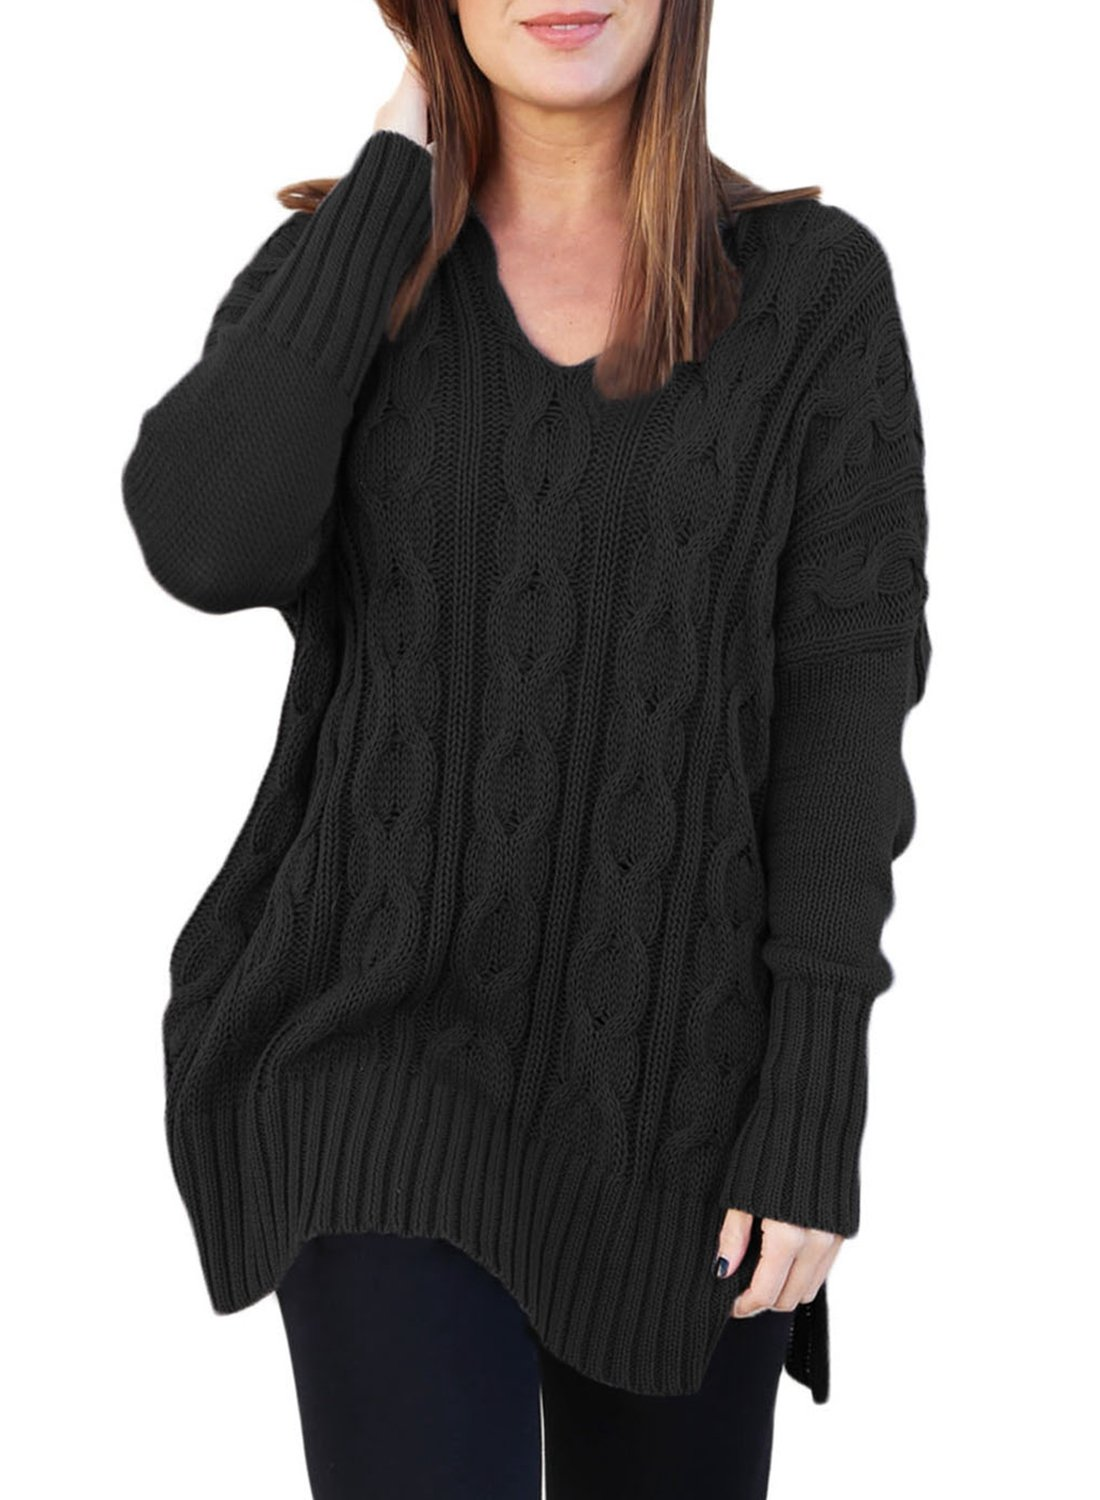 Women's Long Sleeve V Neck Casual Loose High Low Knit Pullover Sweaters Oversized Blouse Tops Jumper Solid Black Plus Size XXL 18 20